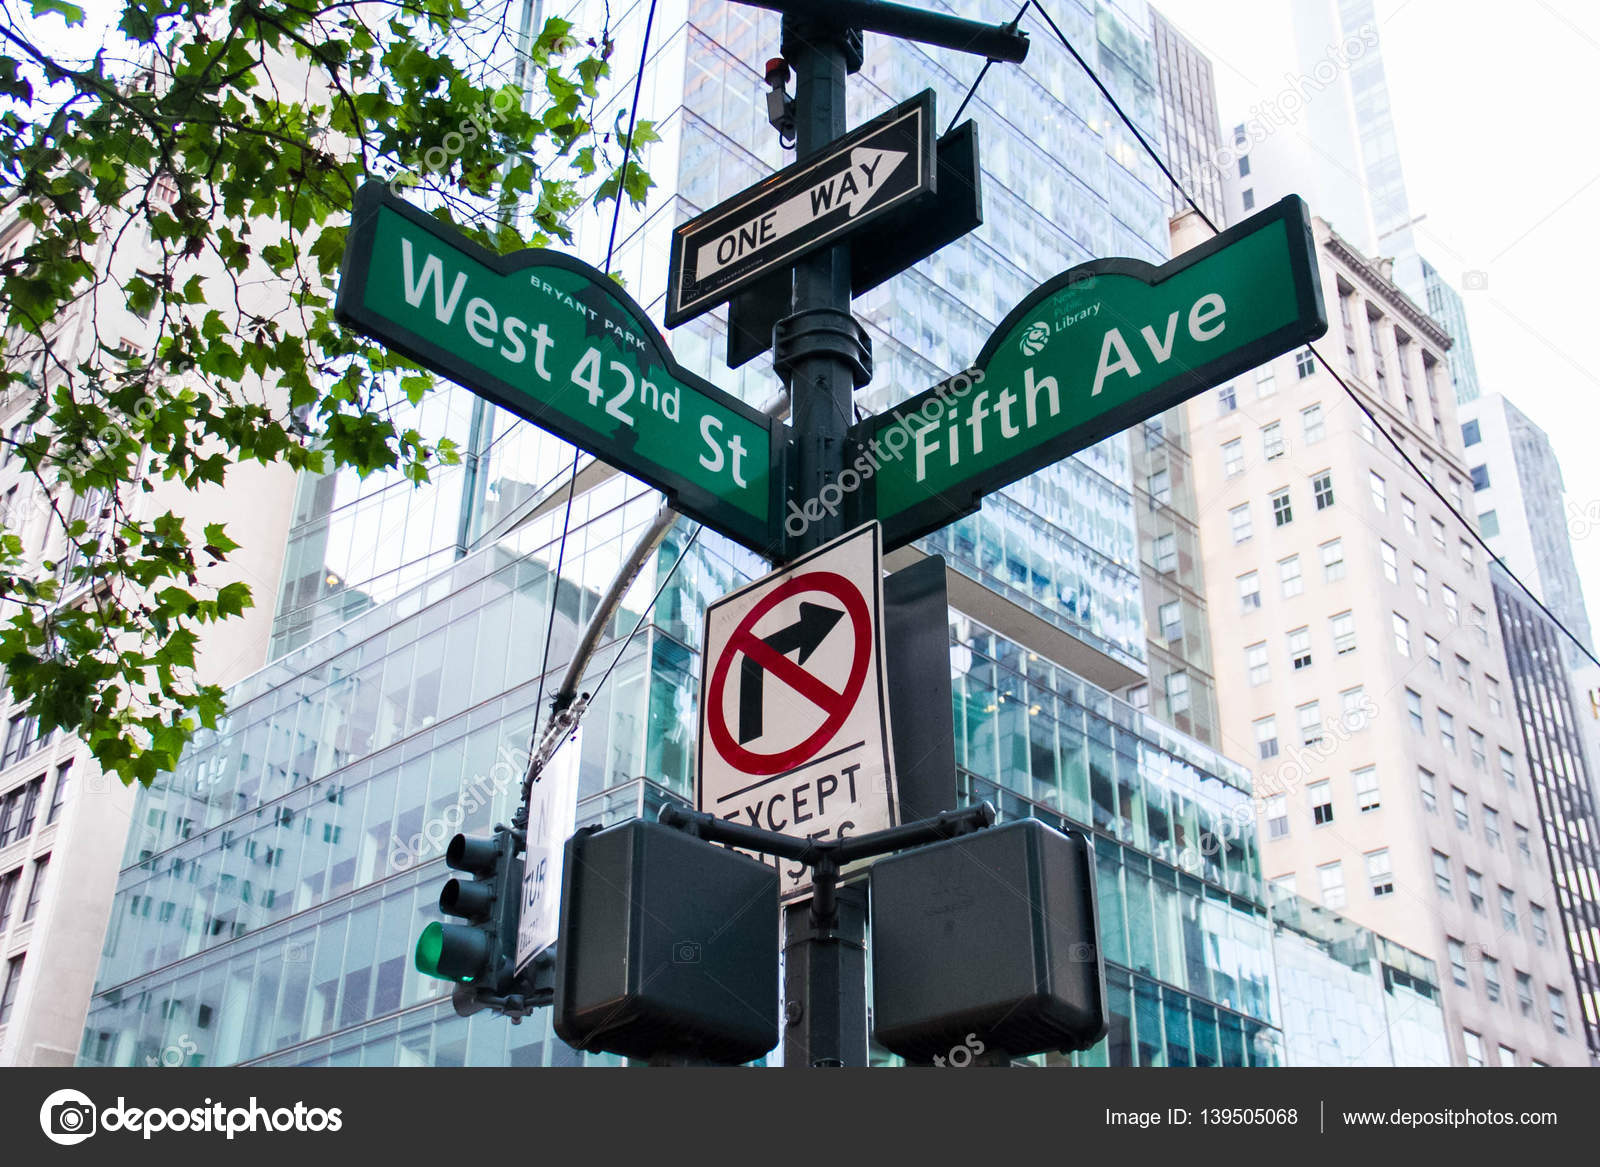 West 42nd Street, Fifth Ave, One way, No turn signs and ...